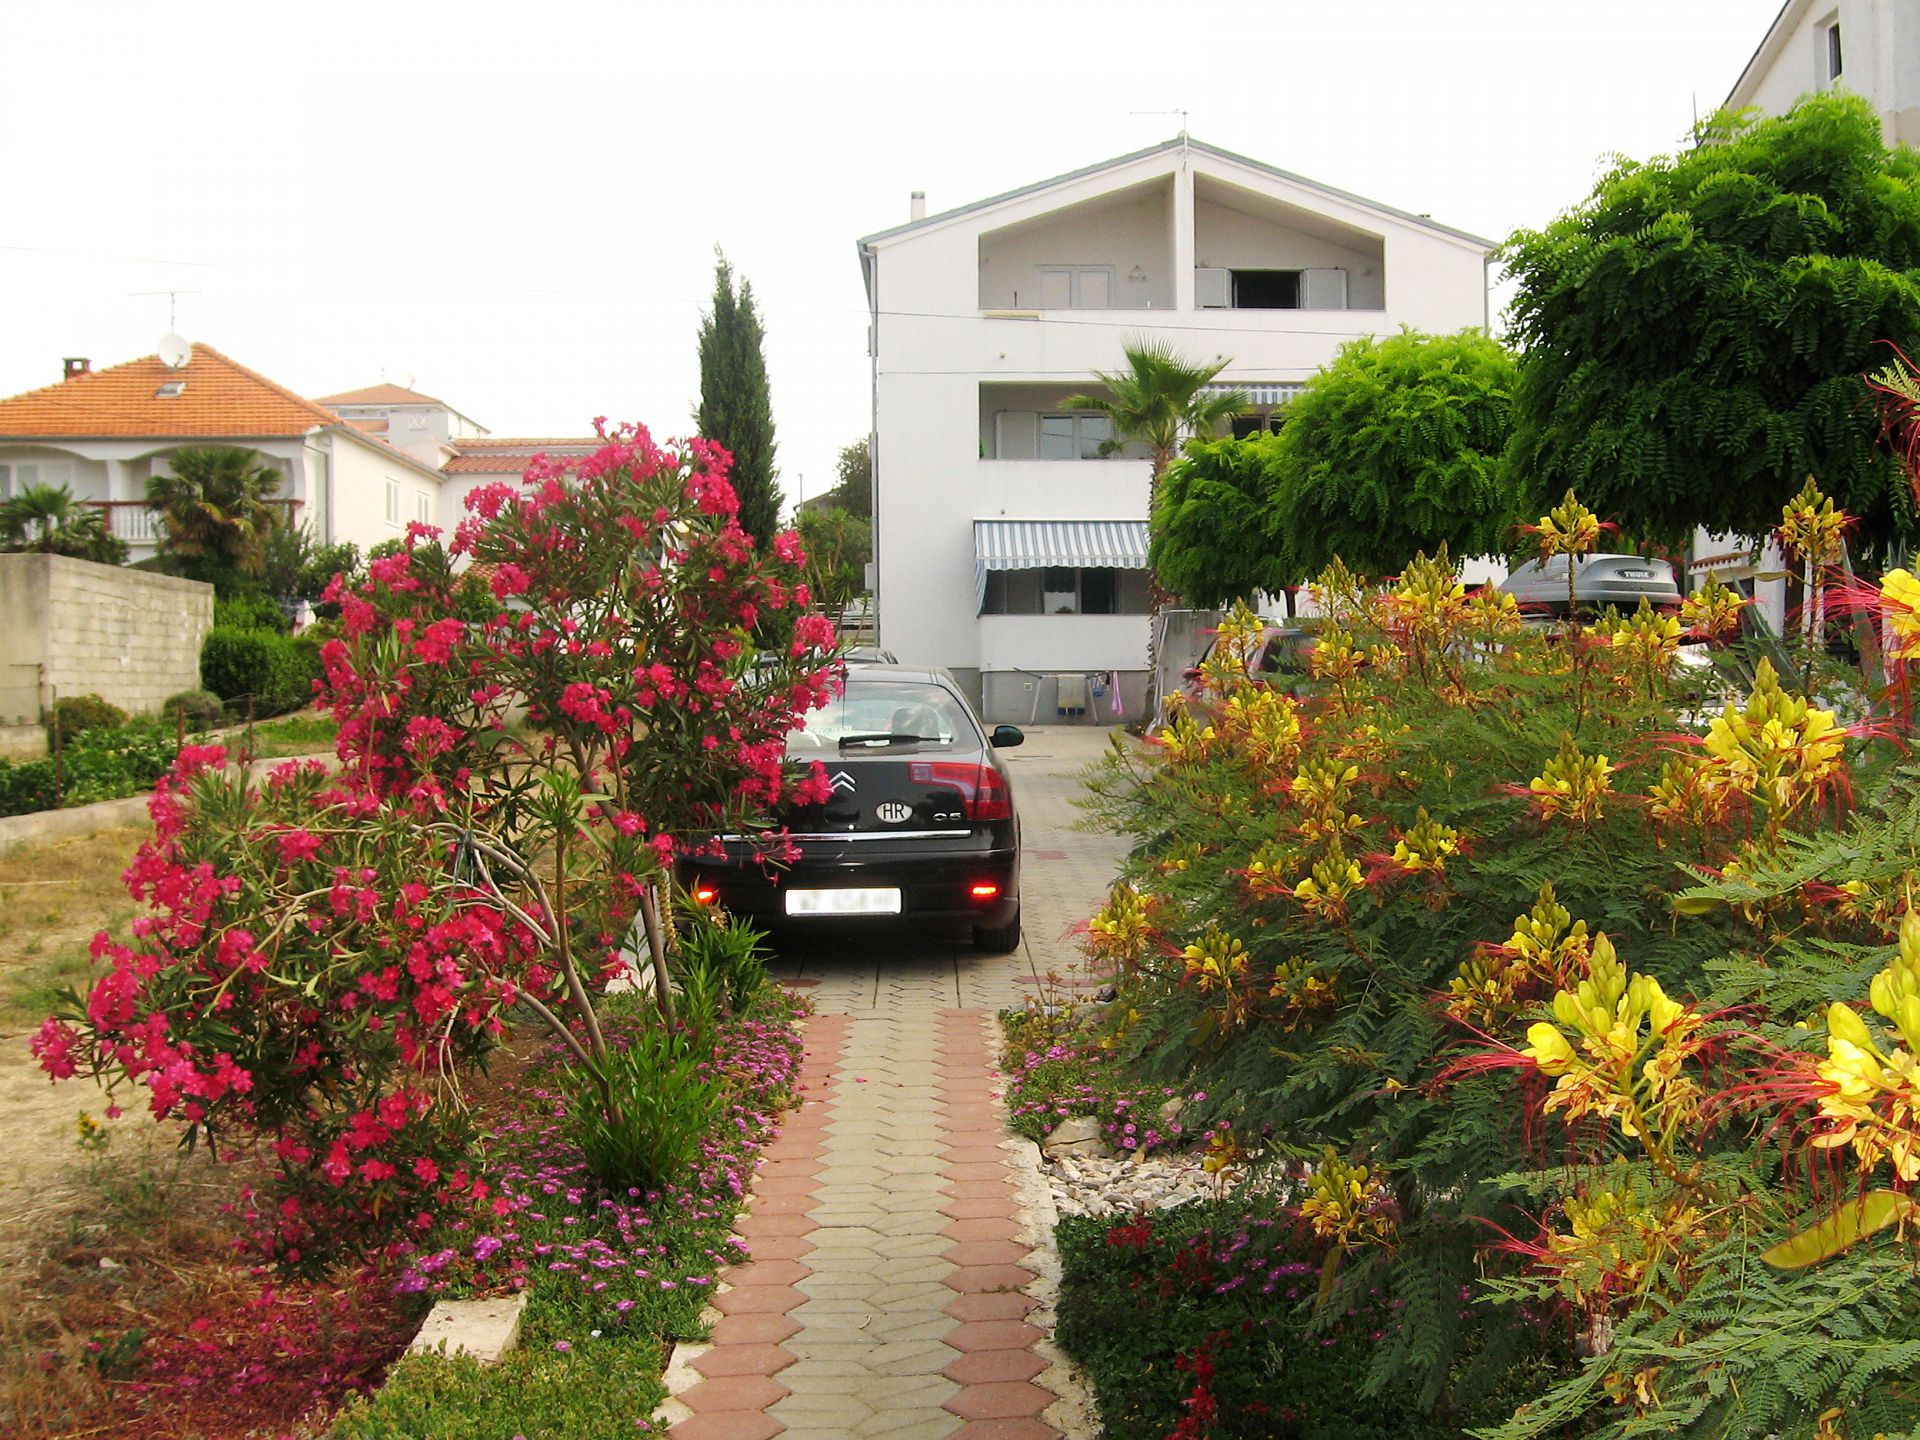 4558 - Pakostane - Apartments Croatia